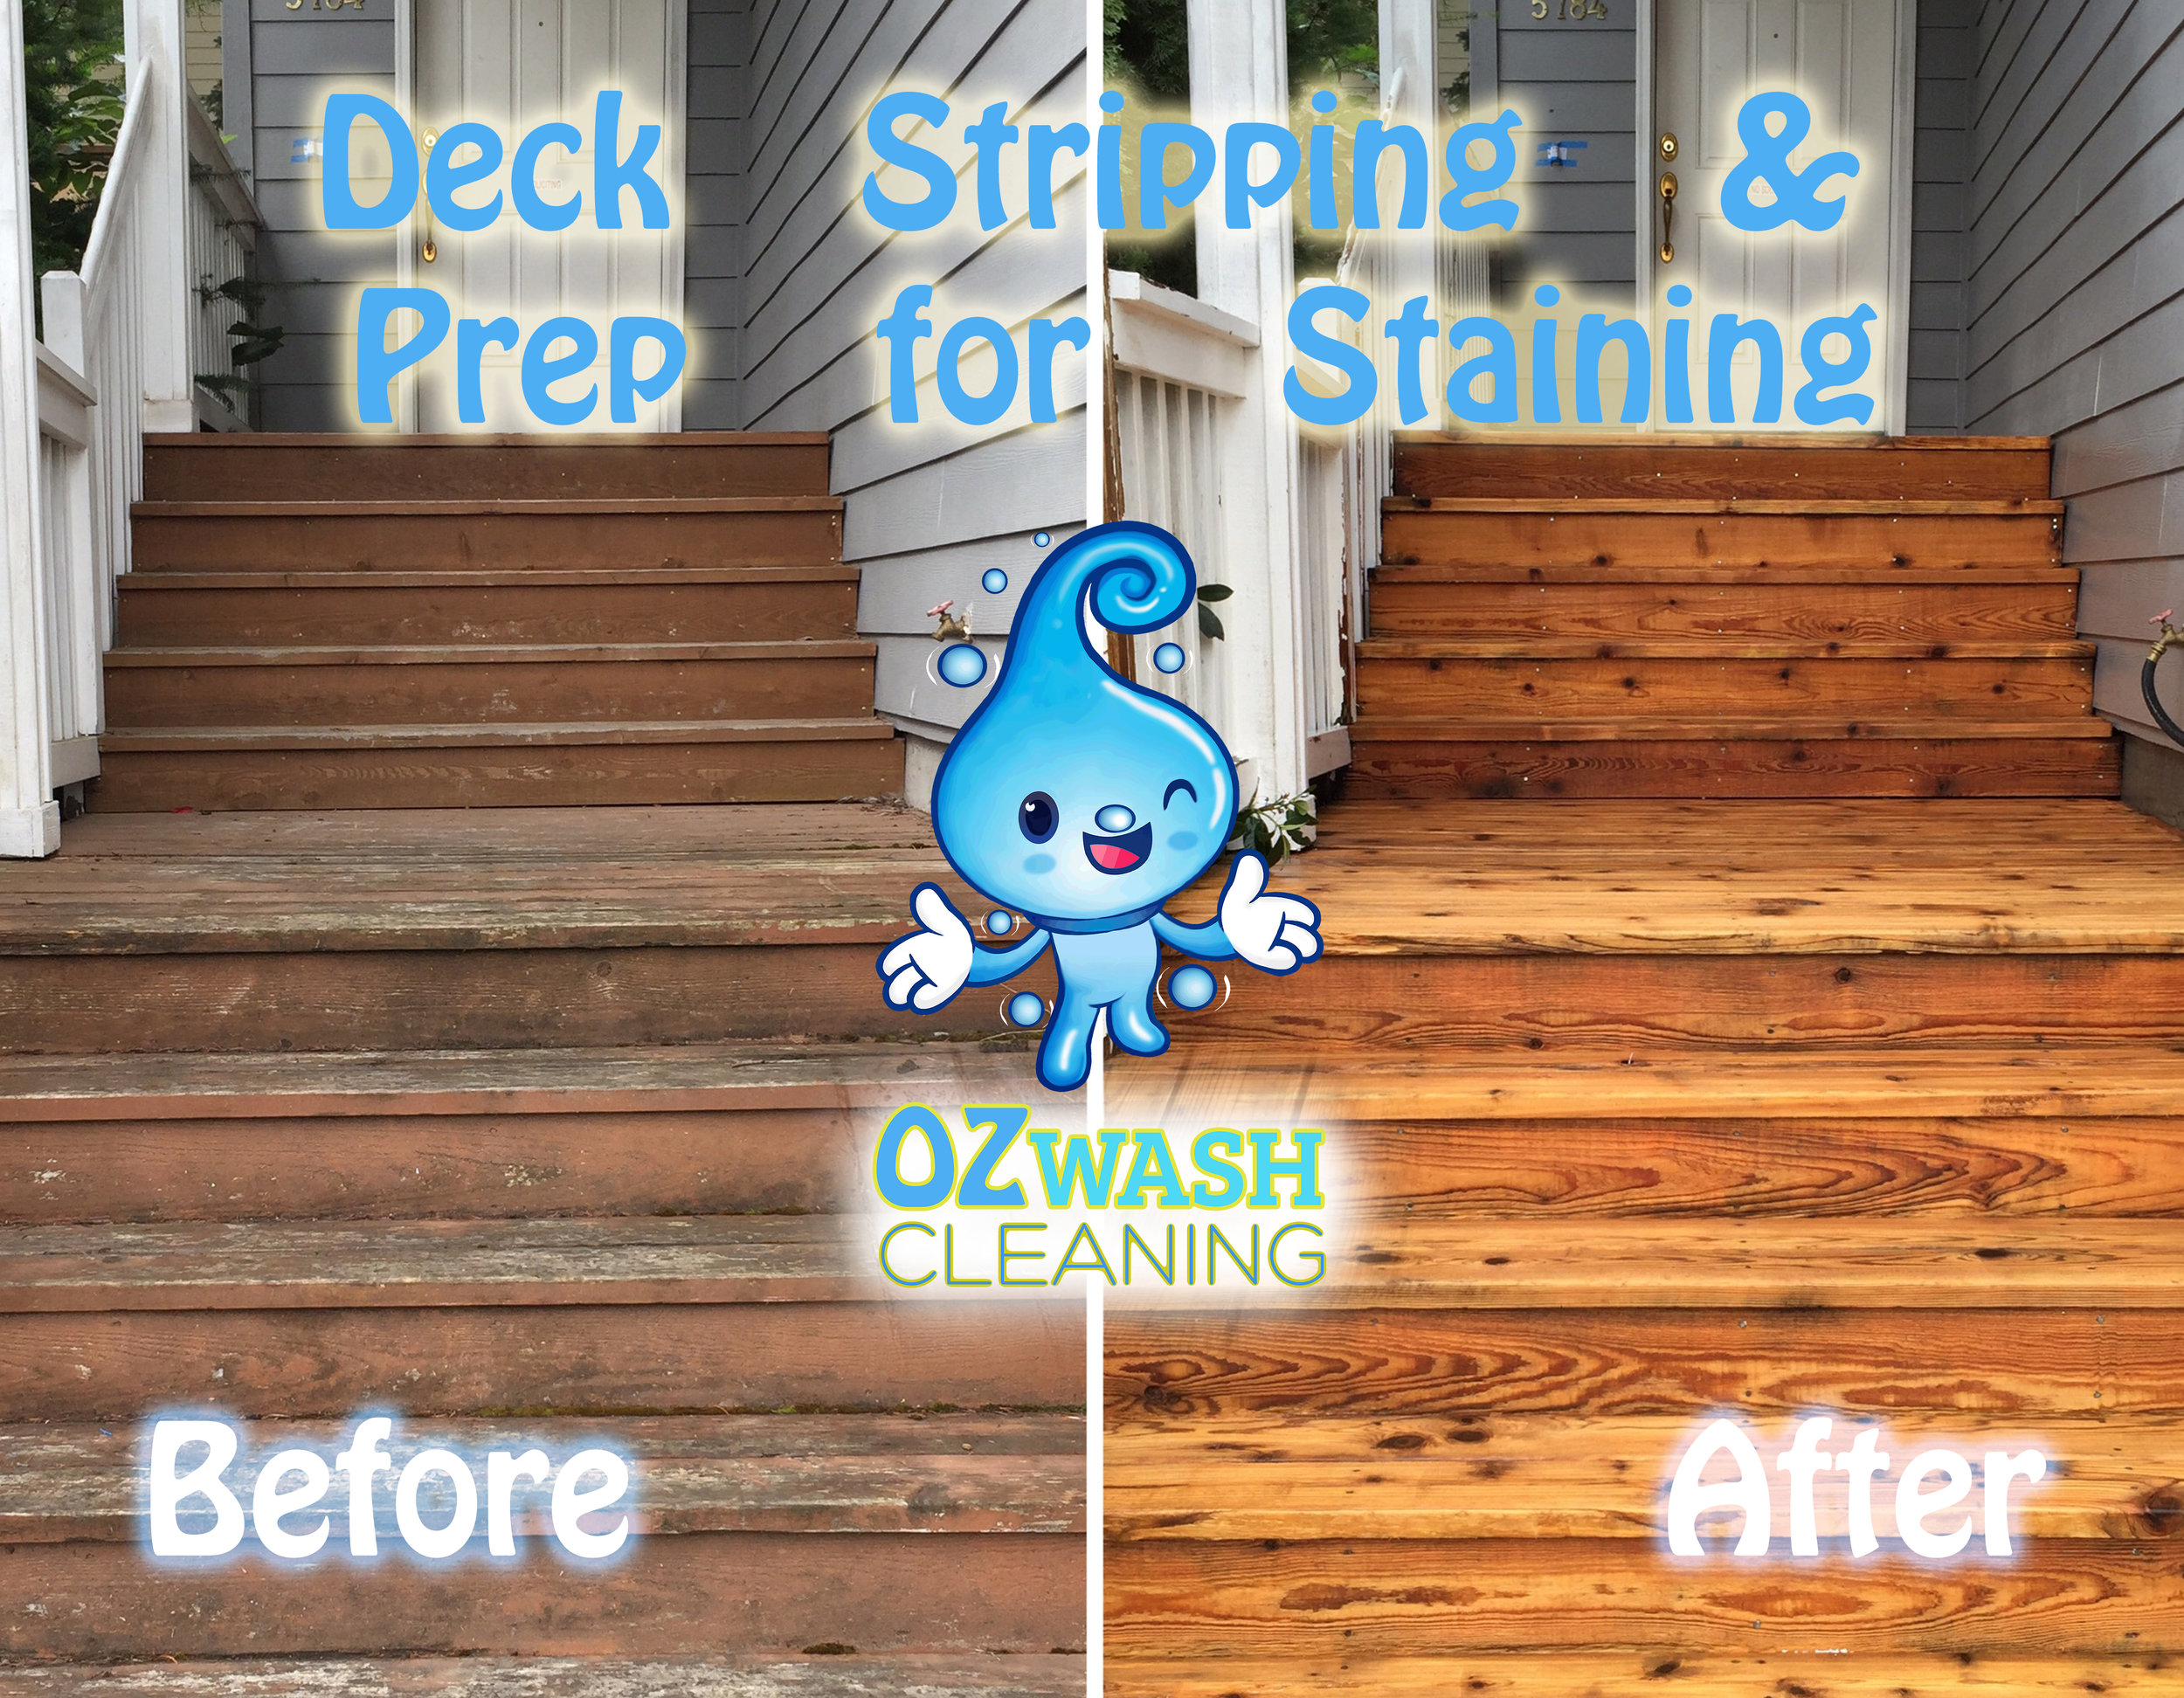 DeckReviving&Staining7.jpg